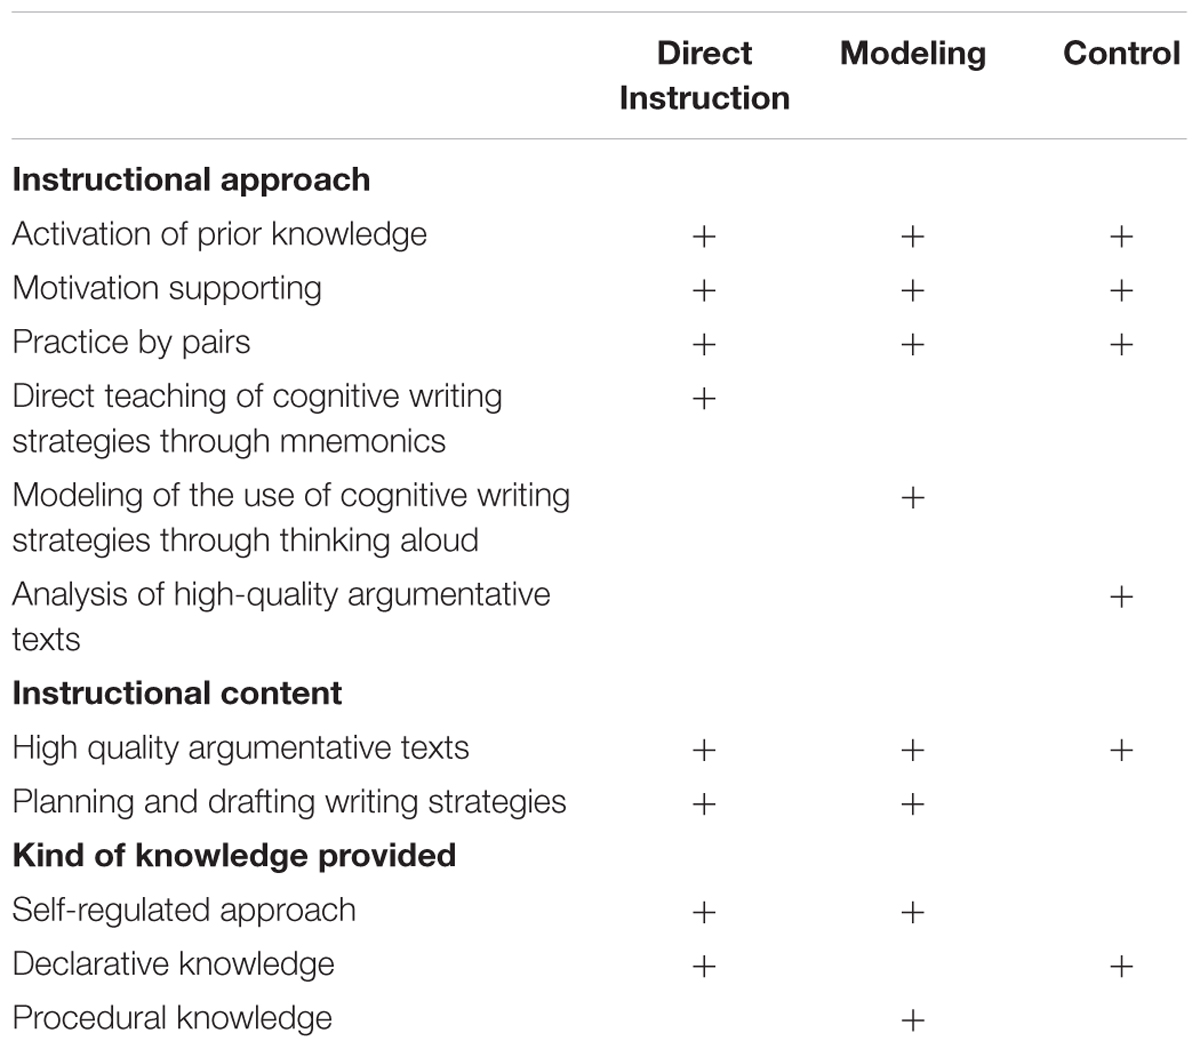 Frontiers Effects Of Direct Instruction And Strategy Modeling On